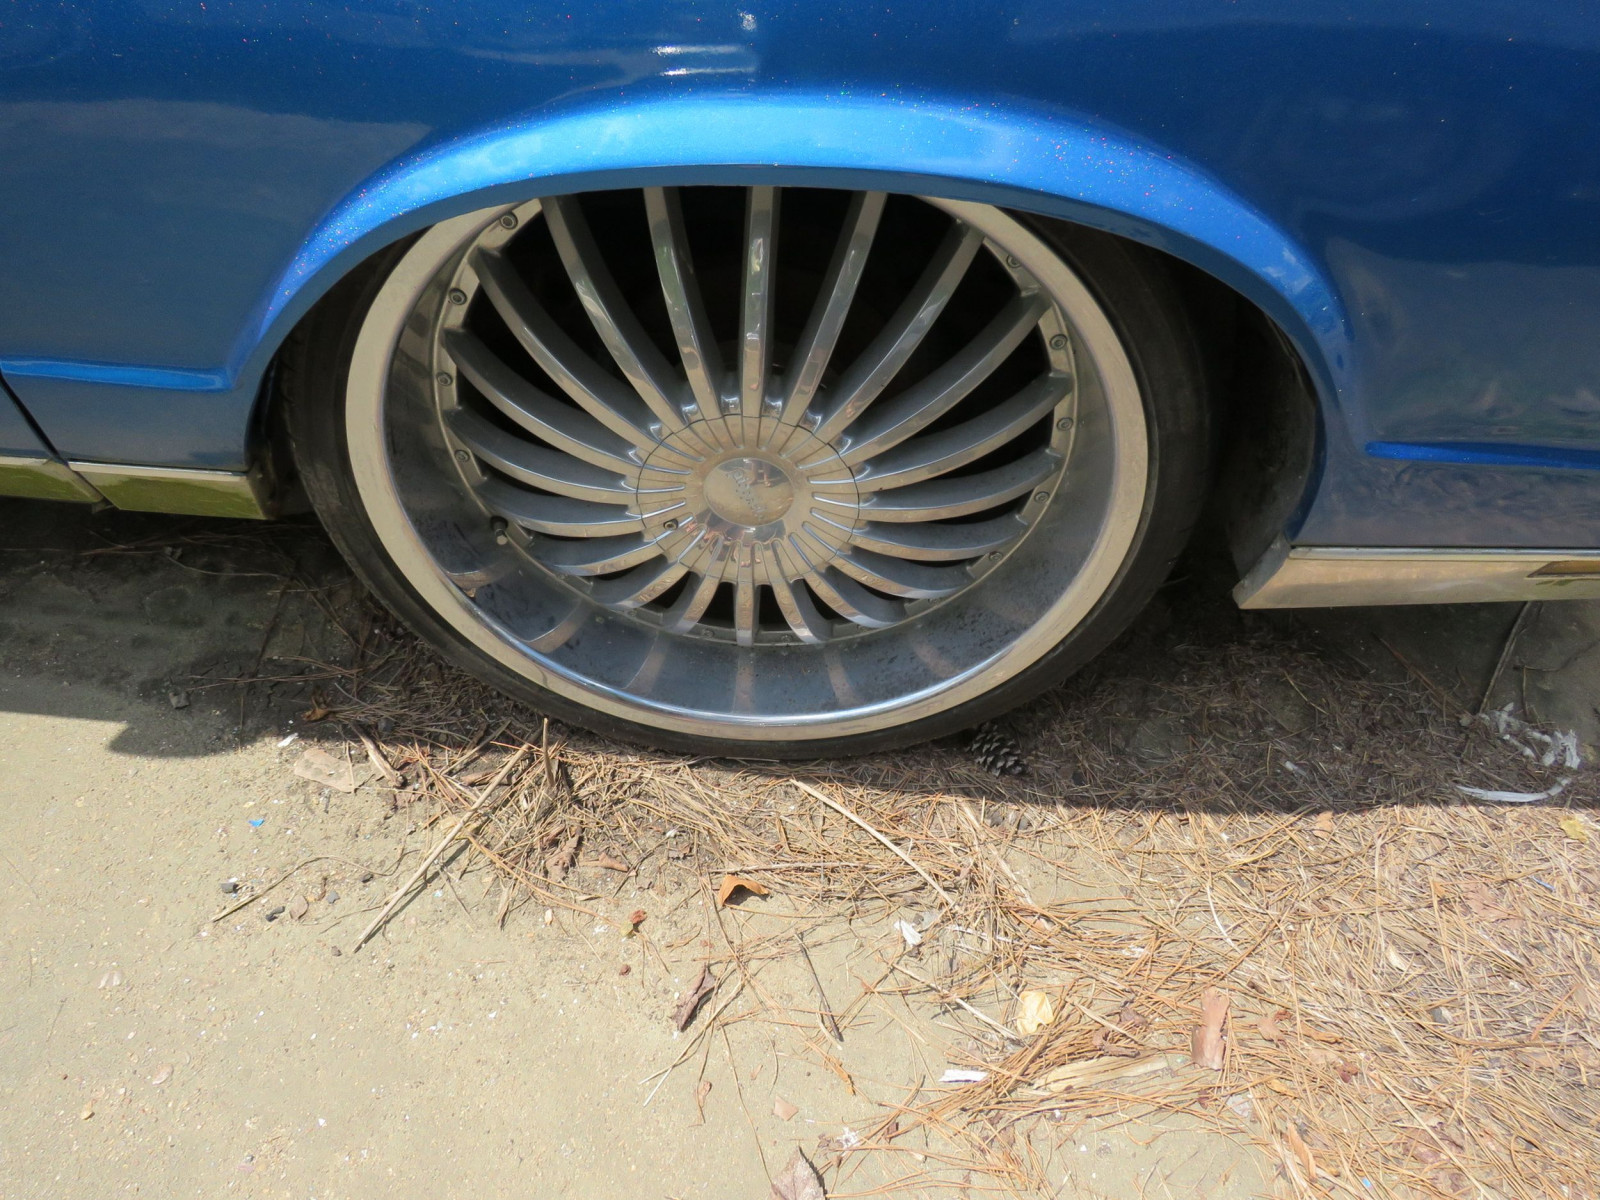 1984 Chevrolet Monte Carlo Custom Project - Image 3